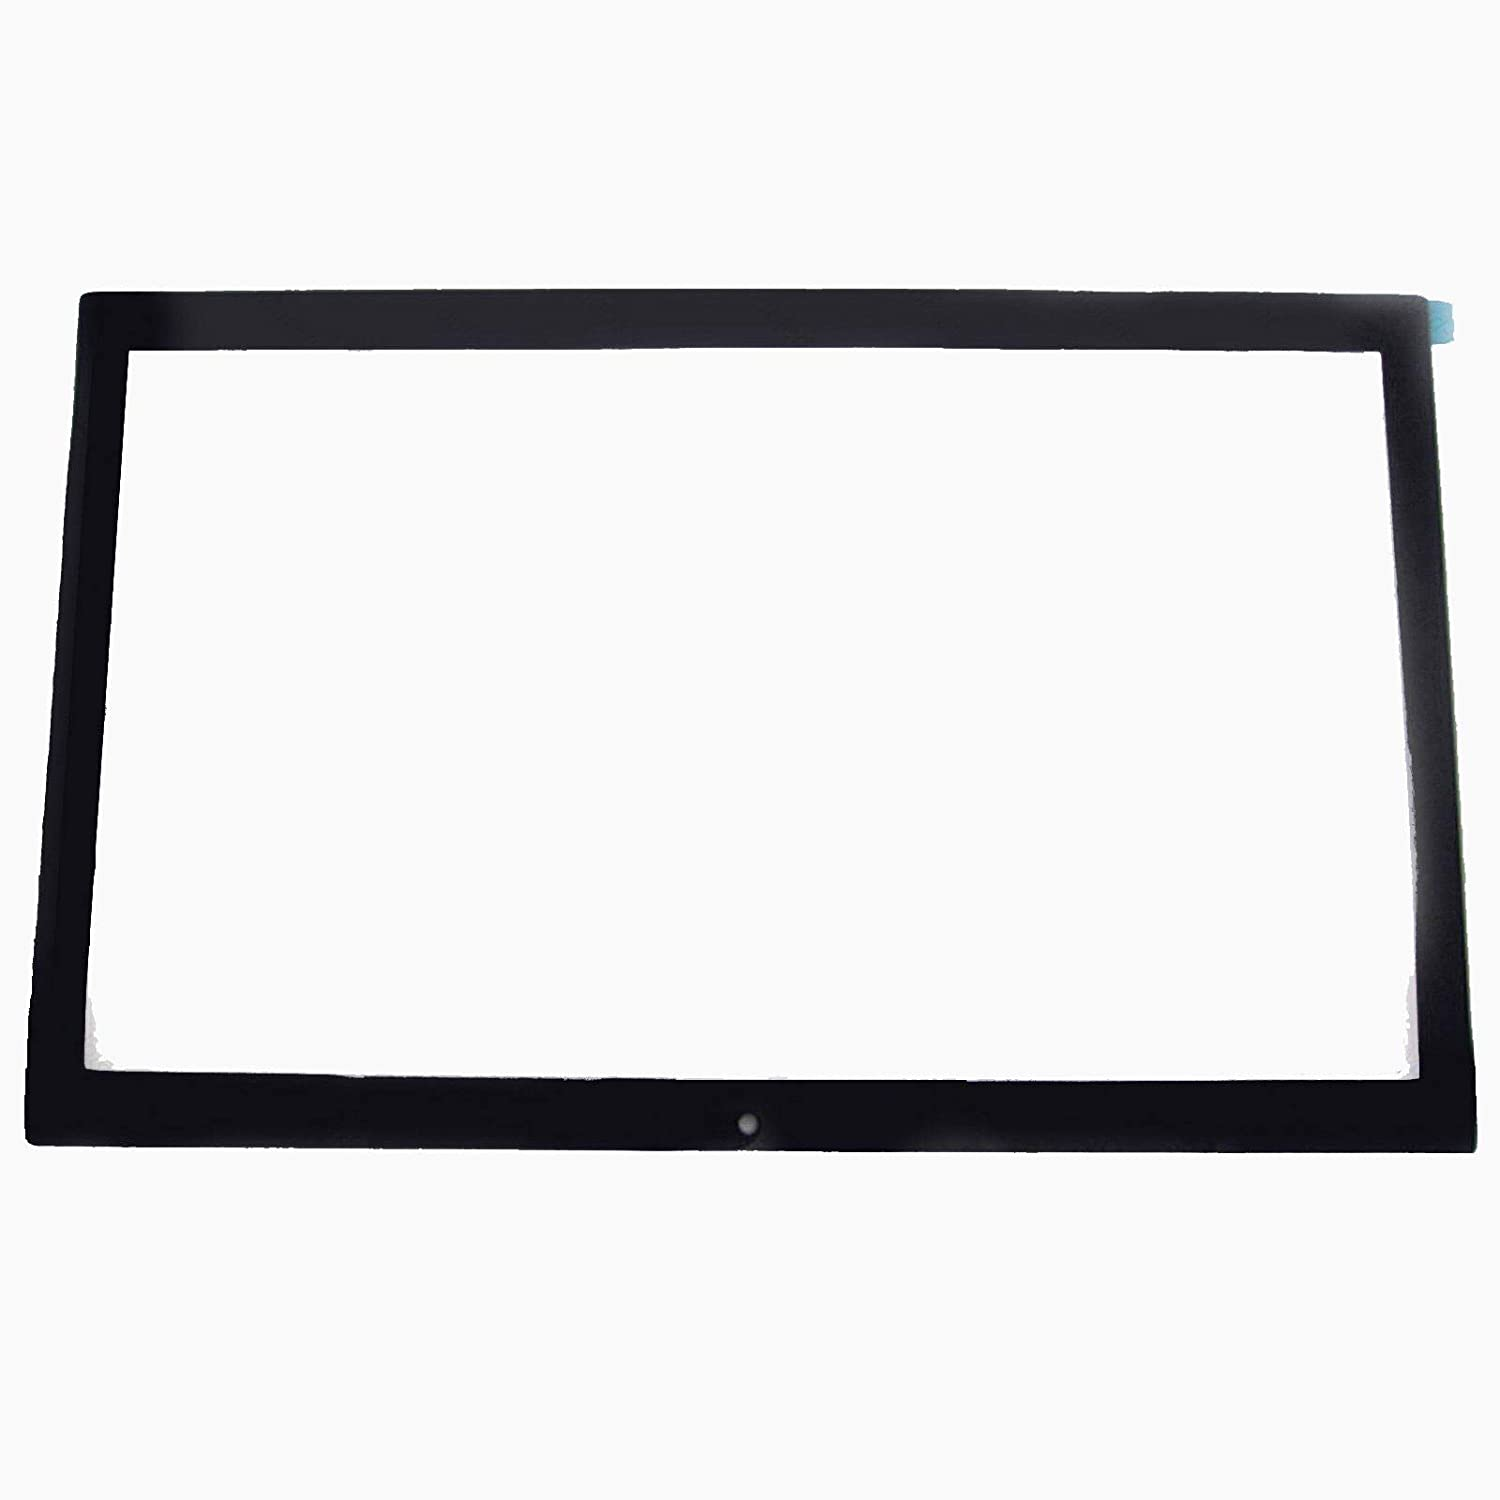 "Bblon New 11.6"" Touch Screen Glass Digitizer Panel Replacement for Acer Aspire V3-111P"